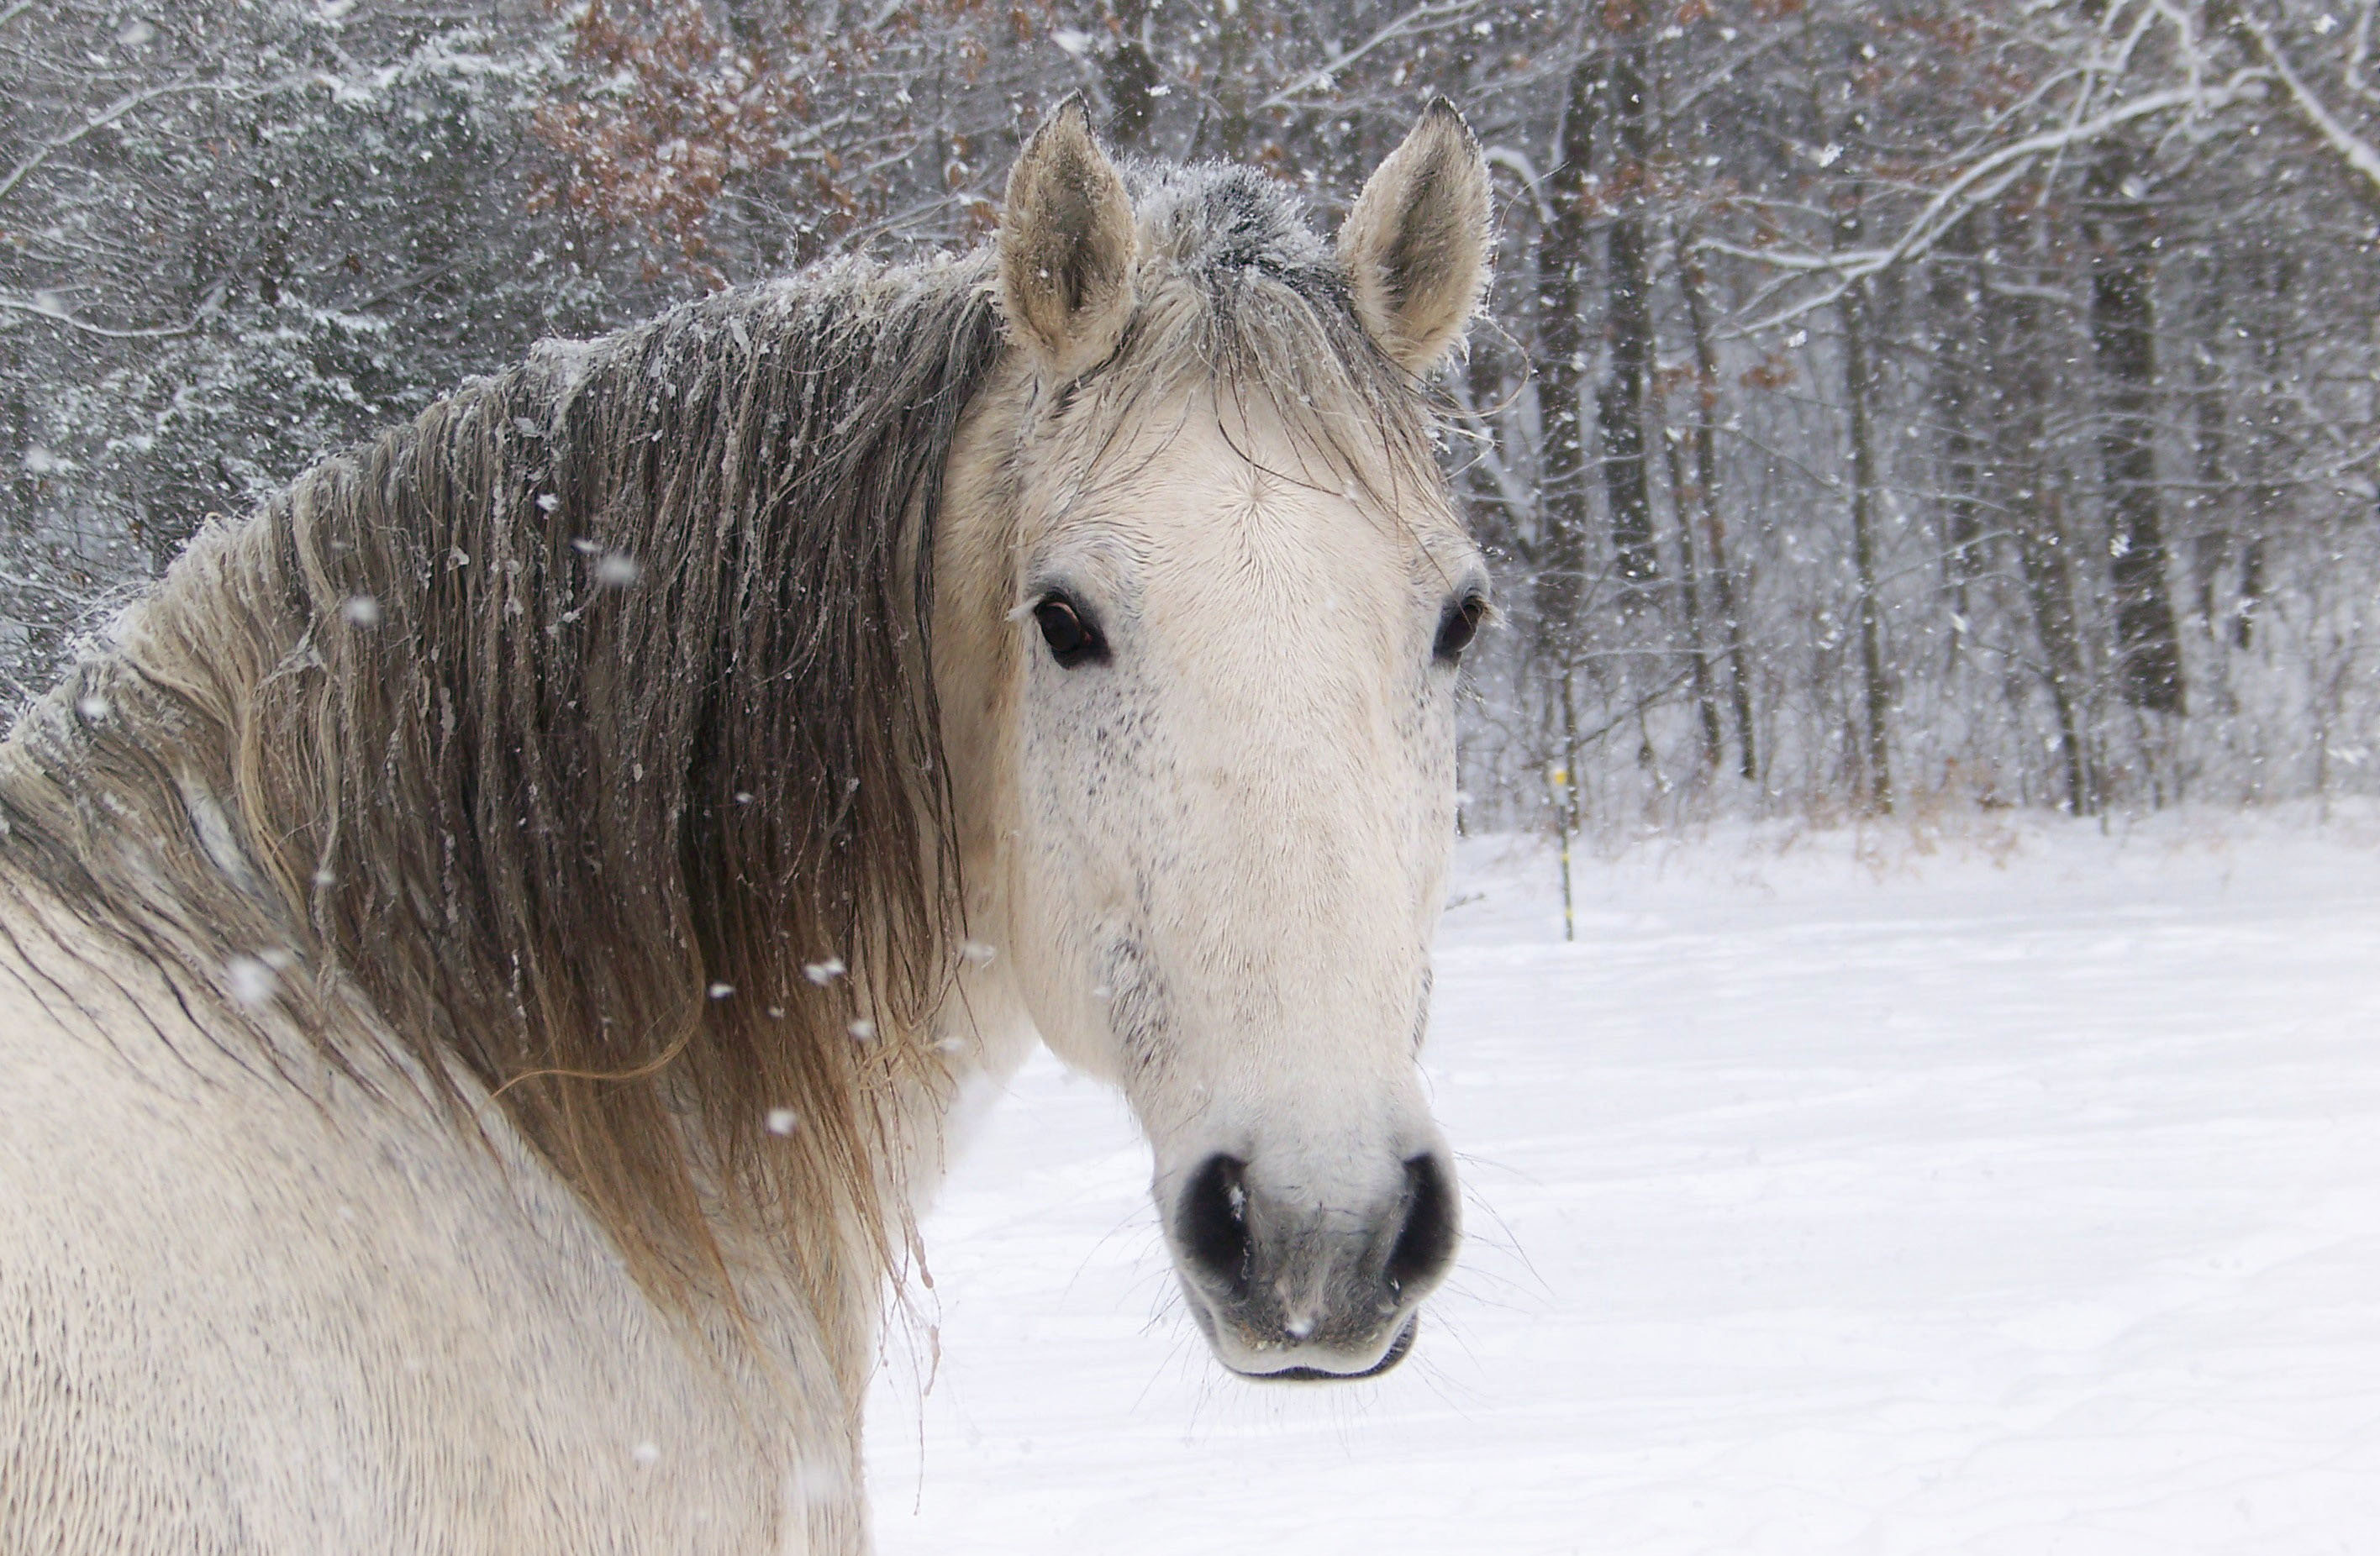 Horses In The Snow Wallpaper 59 Images